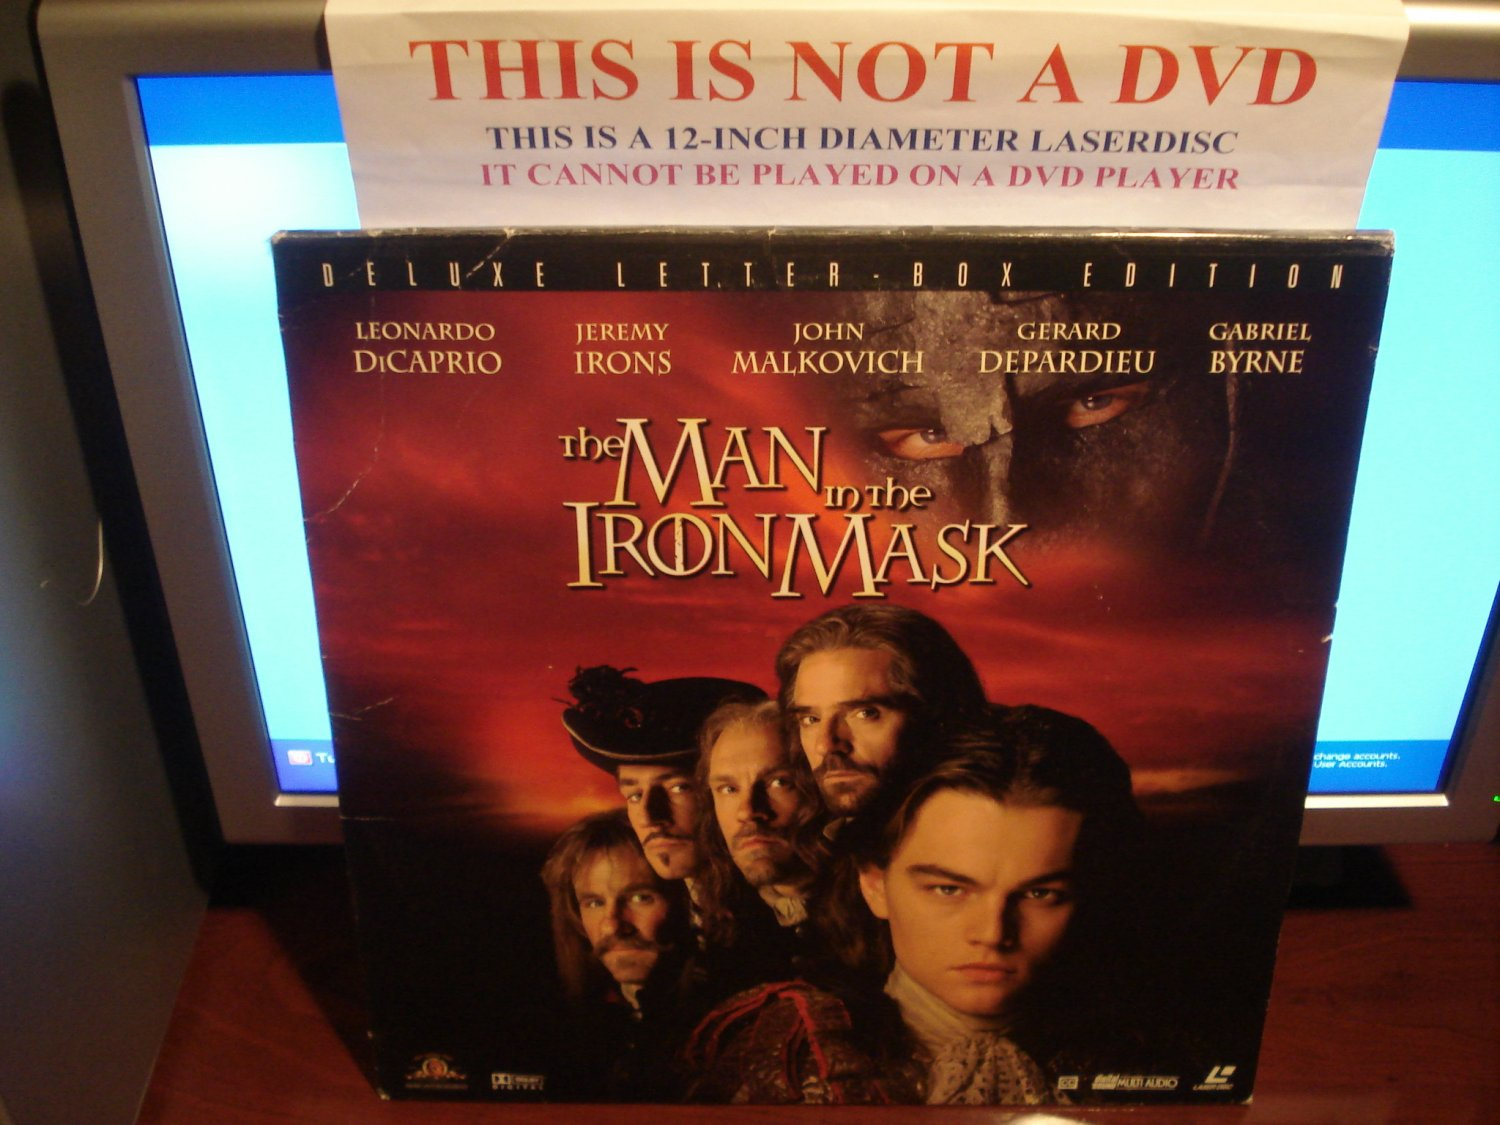 Laserdisc THE MAN IN THE IRON MASK 1998 Leonardo DiCaprio Lot#2 DLX LTBX AC3 LD